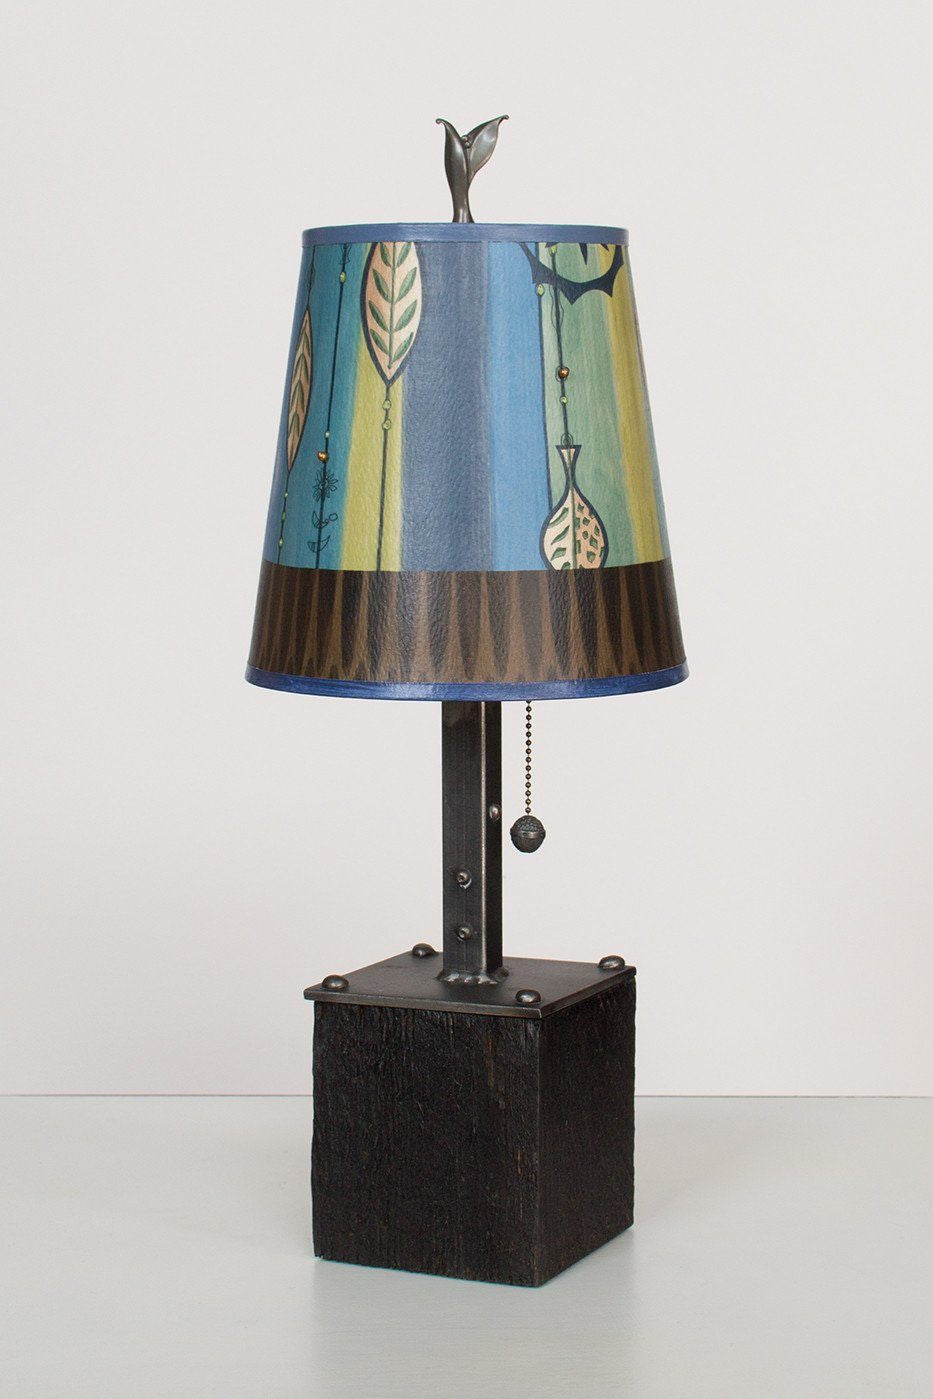 Steel Table Lamp on Reclaimed Wood with Small Drum Shade in Leaf Stripe Blues Lit